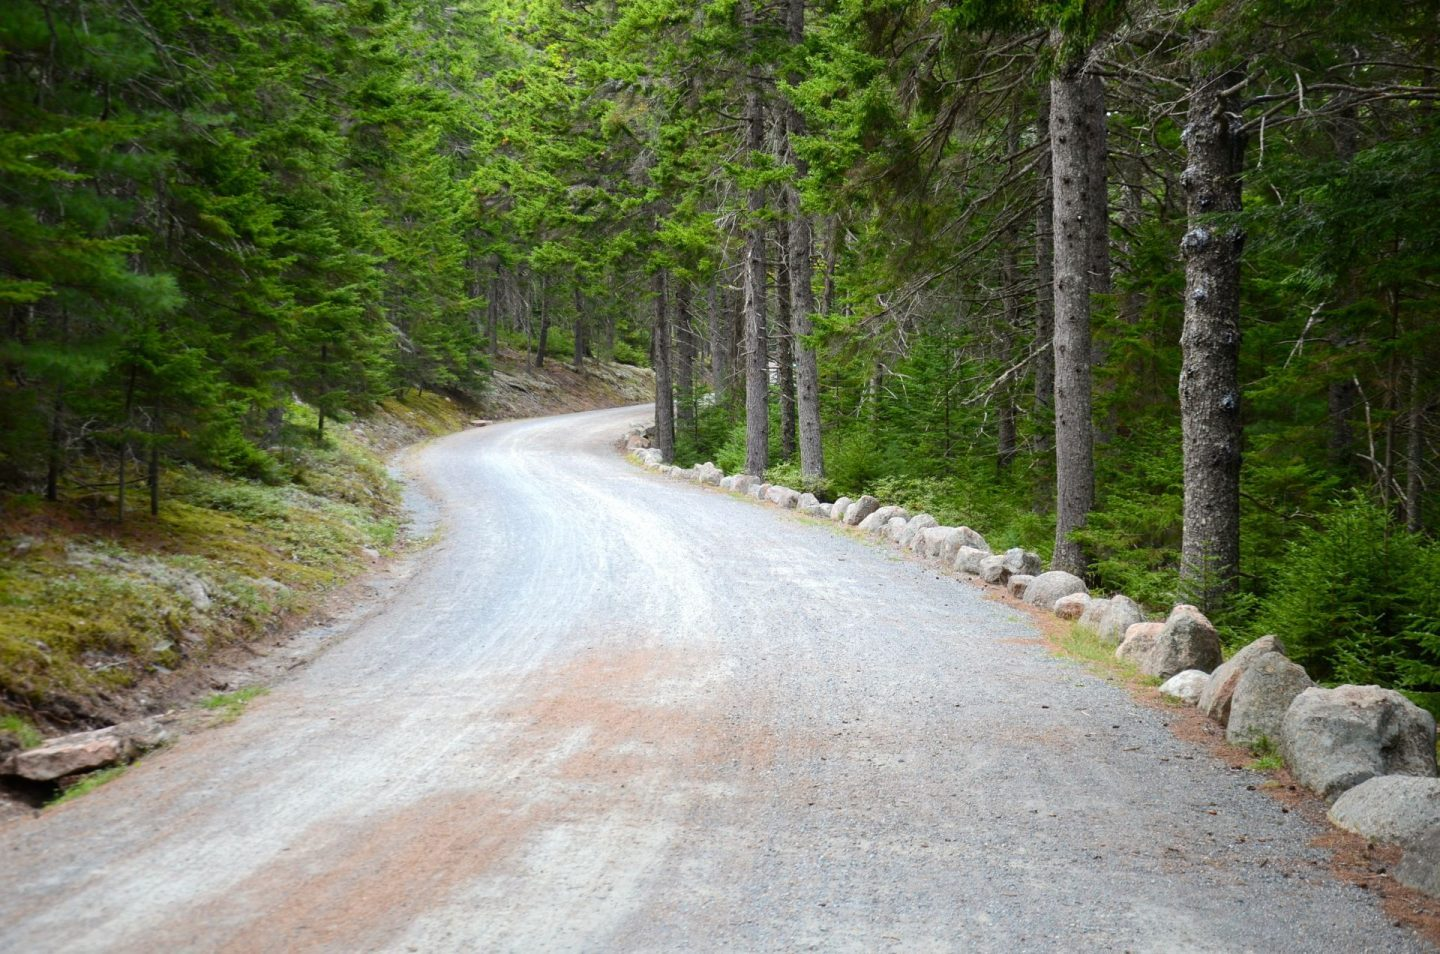 Taking a walk on the carriage roads at Acadia National Park